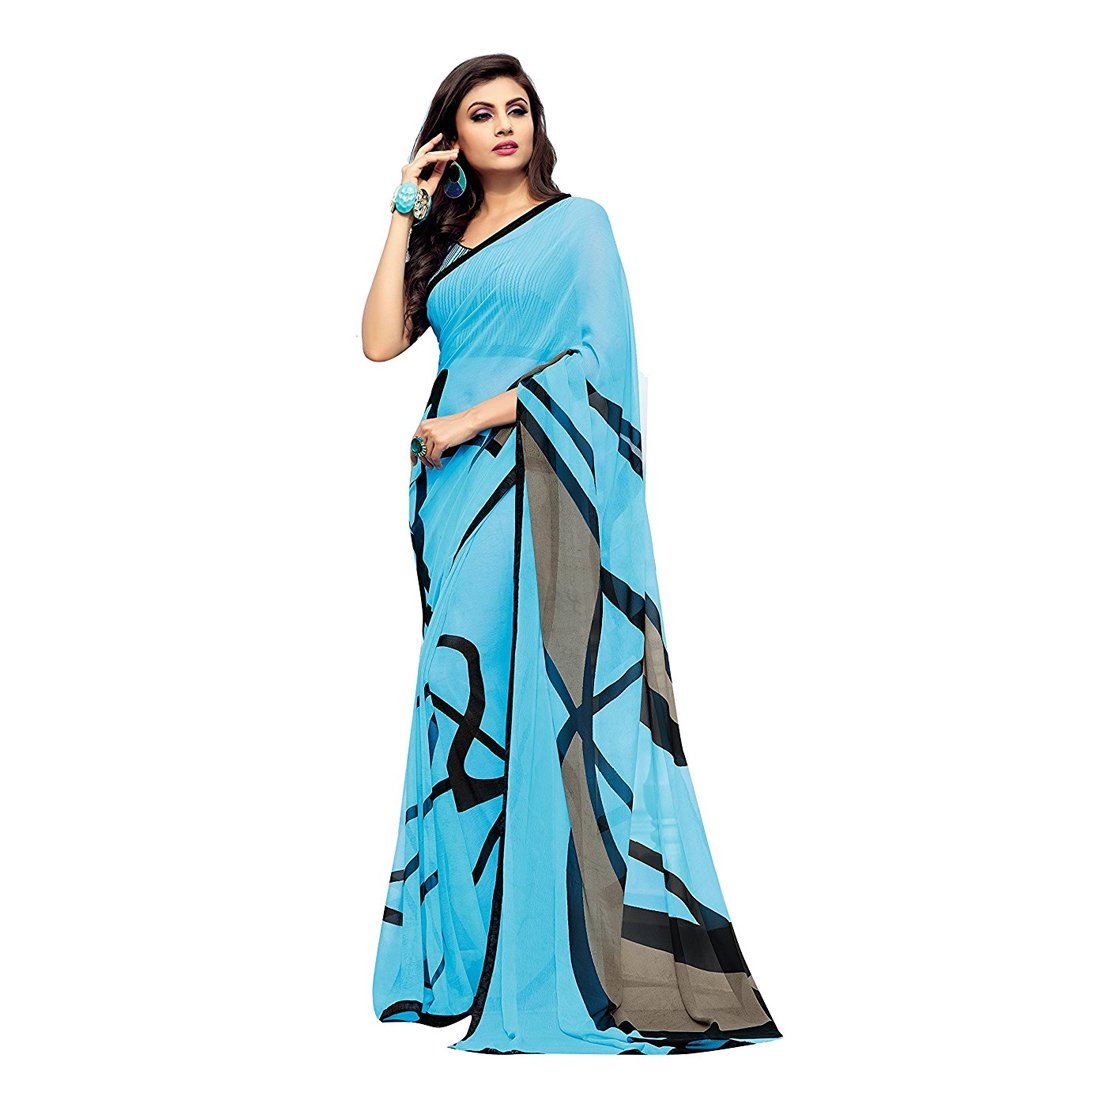 22c4144457 Craftsvilla Women's Georgette Lace Work Designer Sky Blue Saree with Blouse  piece: Amazon.in: Clothing & Accessories